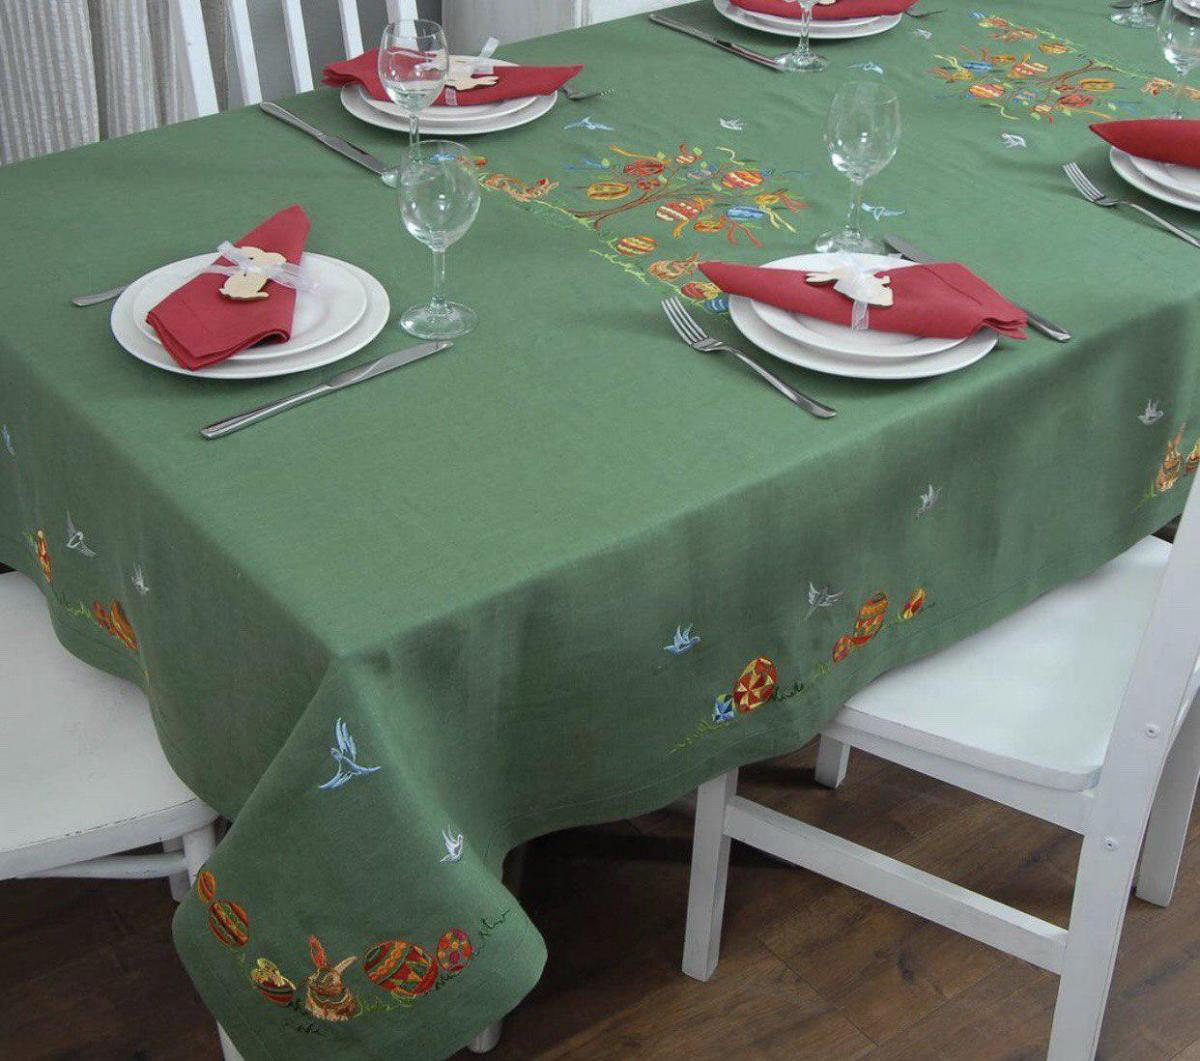 Tablecloth on the table 240*140 см